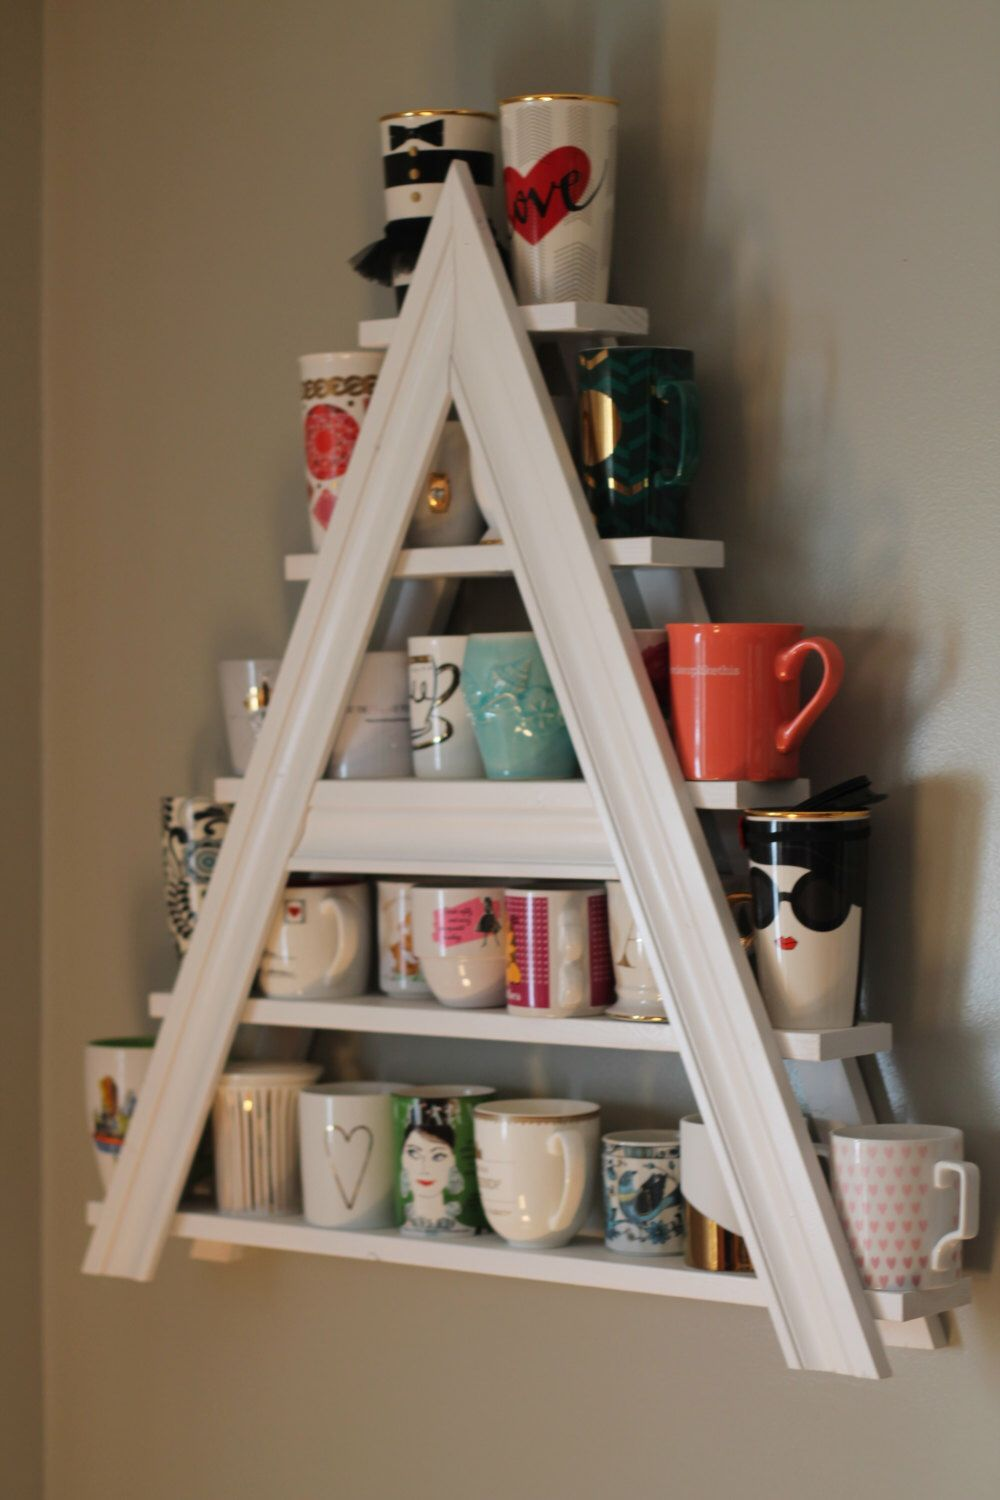 I Collect Different Mugs And My Name Starts With An A.TROPHY WIFE Must  Have! Custom White Wood Painted Tea Or Coffee Mug Rack Letter A Or Triangle  Or Other ...